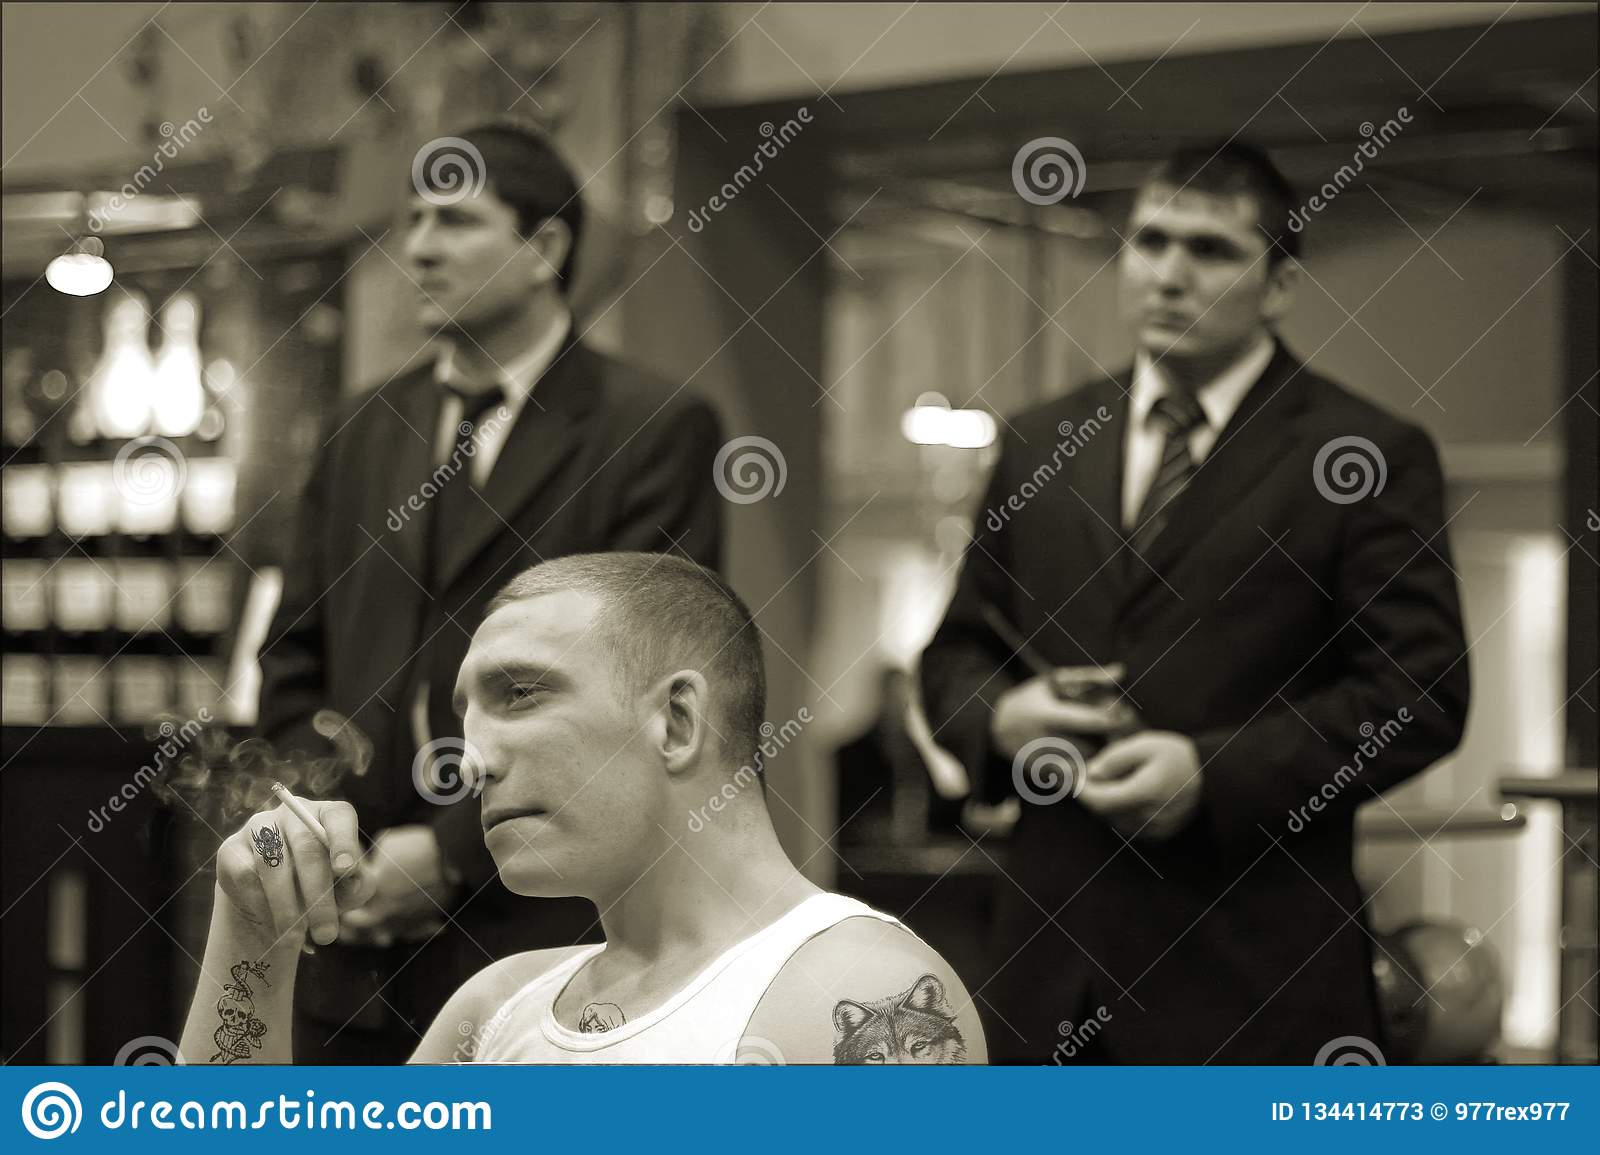 Brovary, Ukraine, 22.02.2006 Man in prison tattoos is smoking. Two his guards stand behind